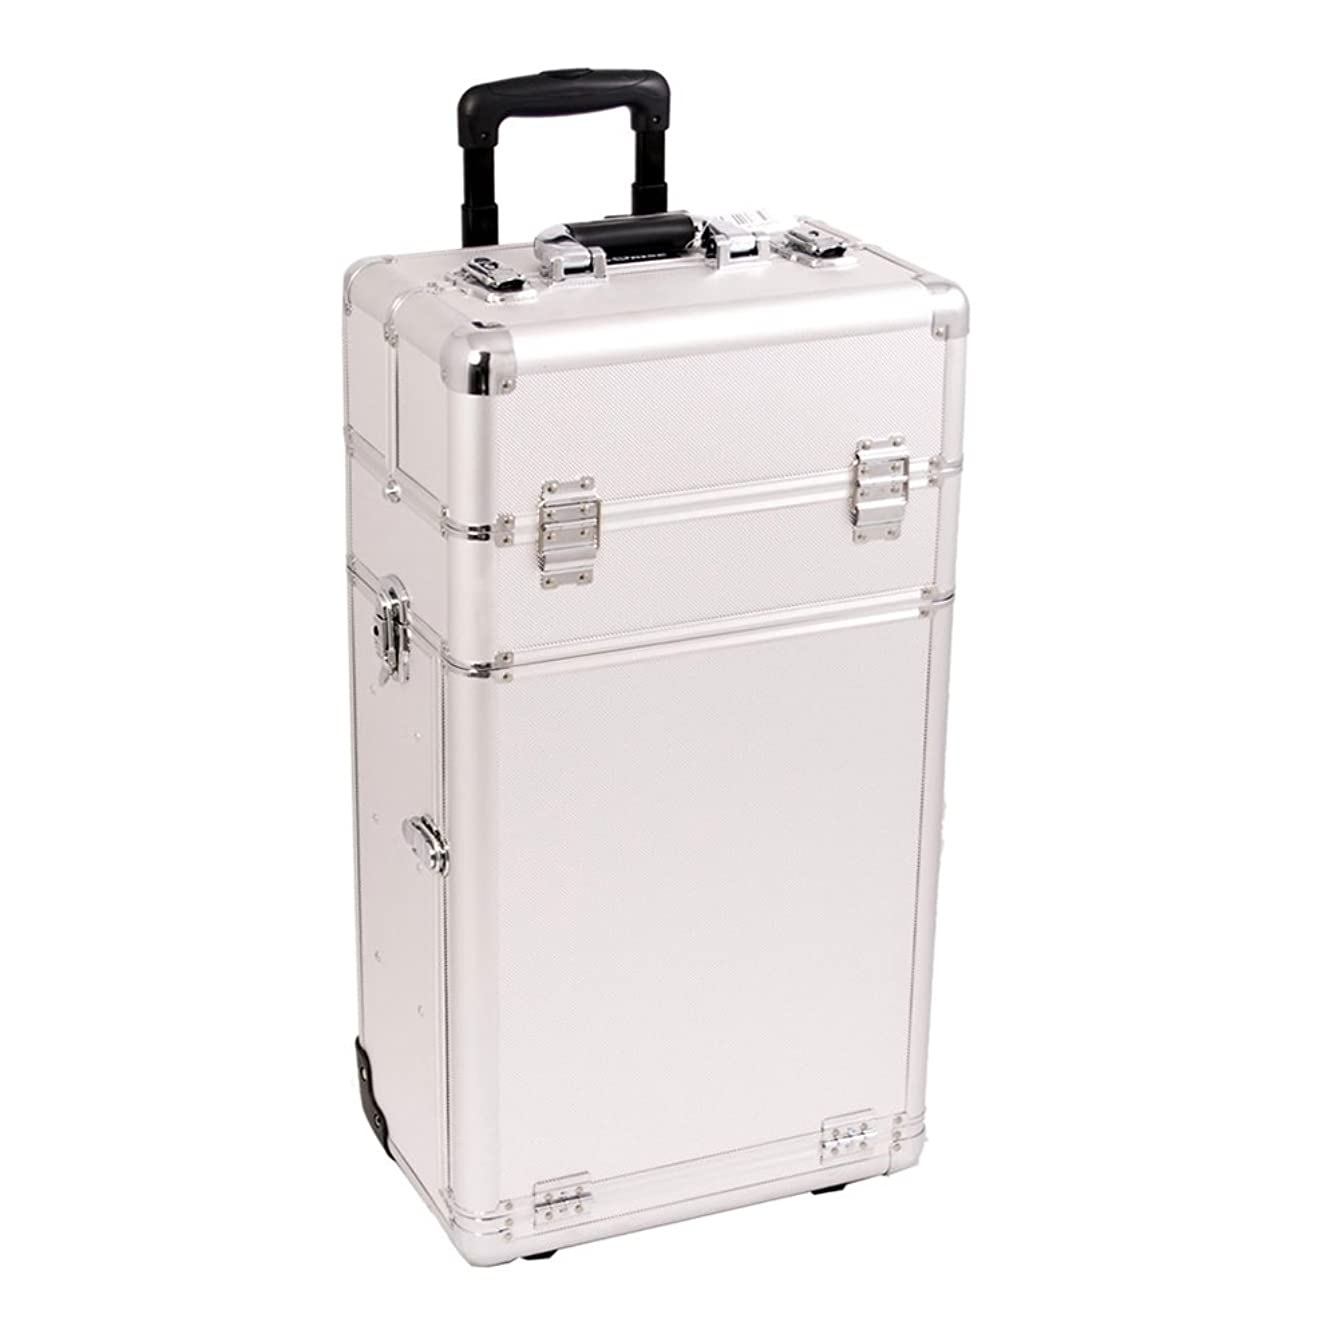 Craft Accents I3463 Dot Trolley Craft/Quilting Storage Case, Silver